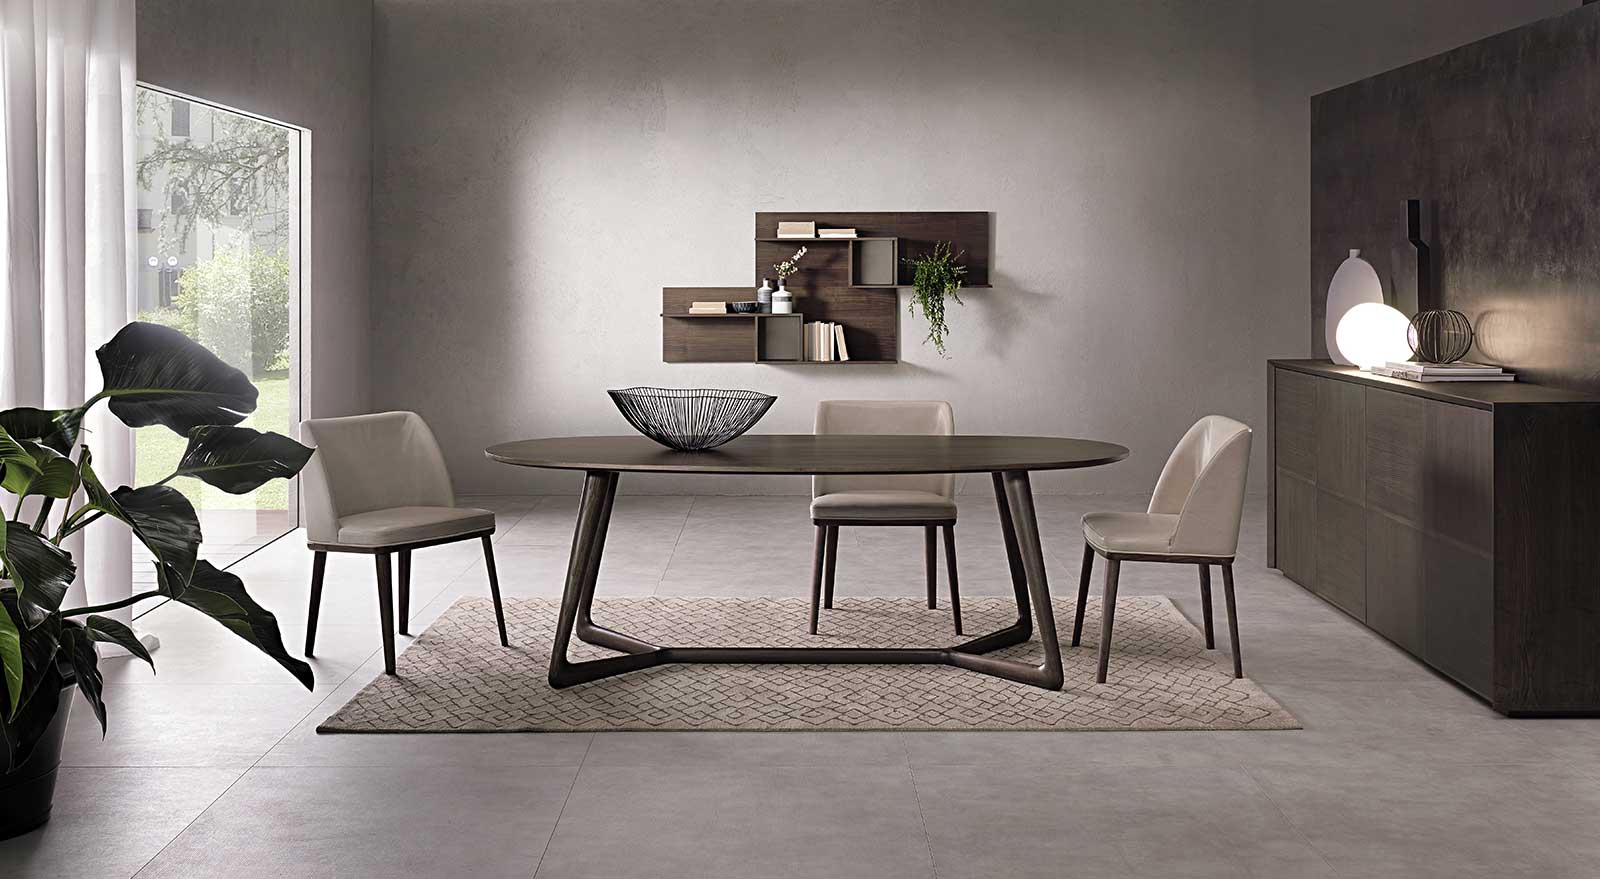 Over Oval Dining Table